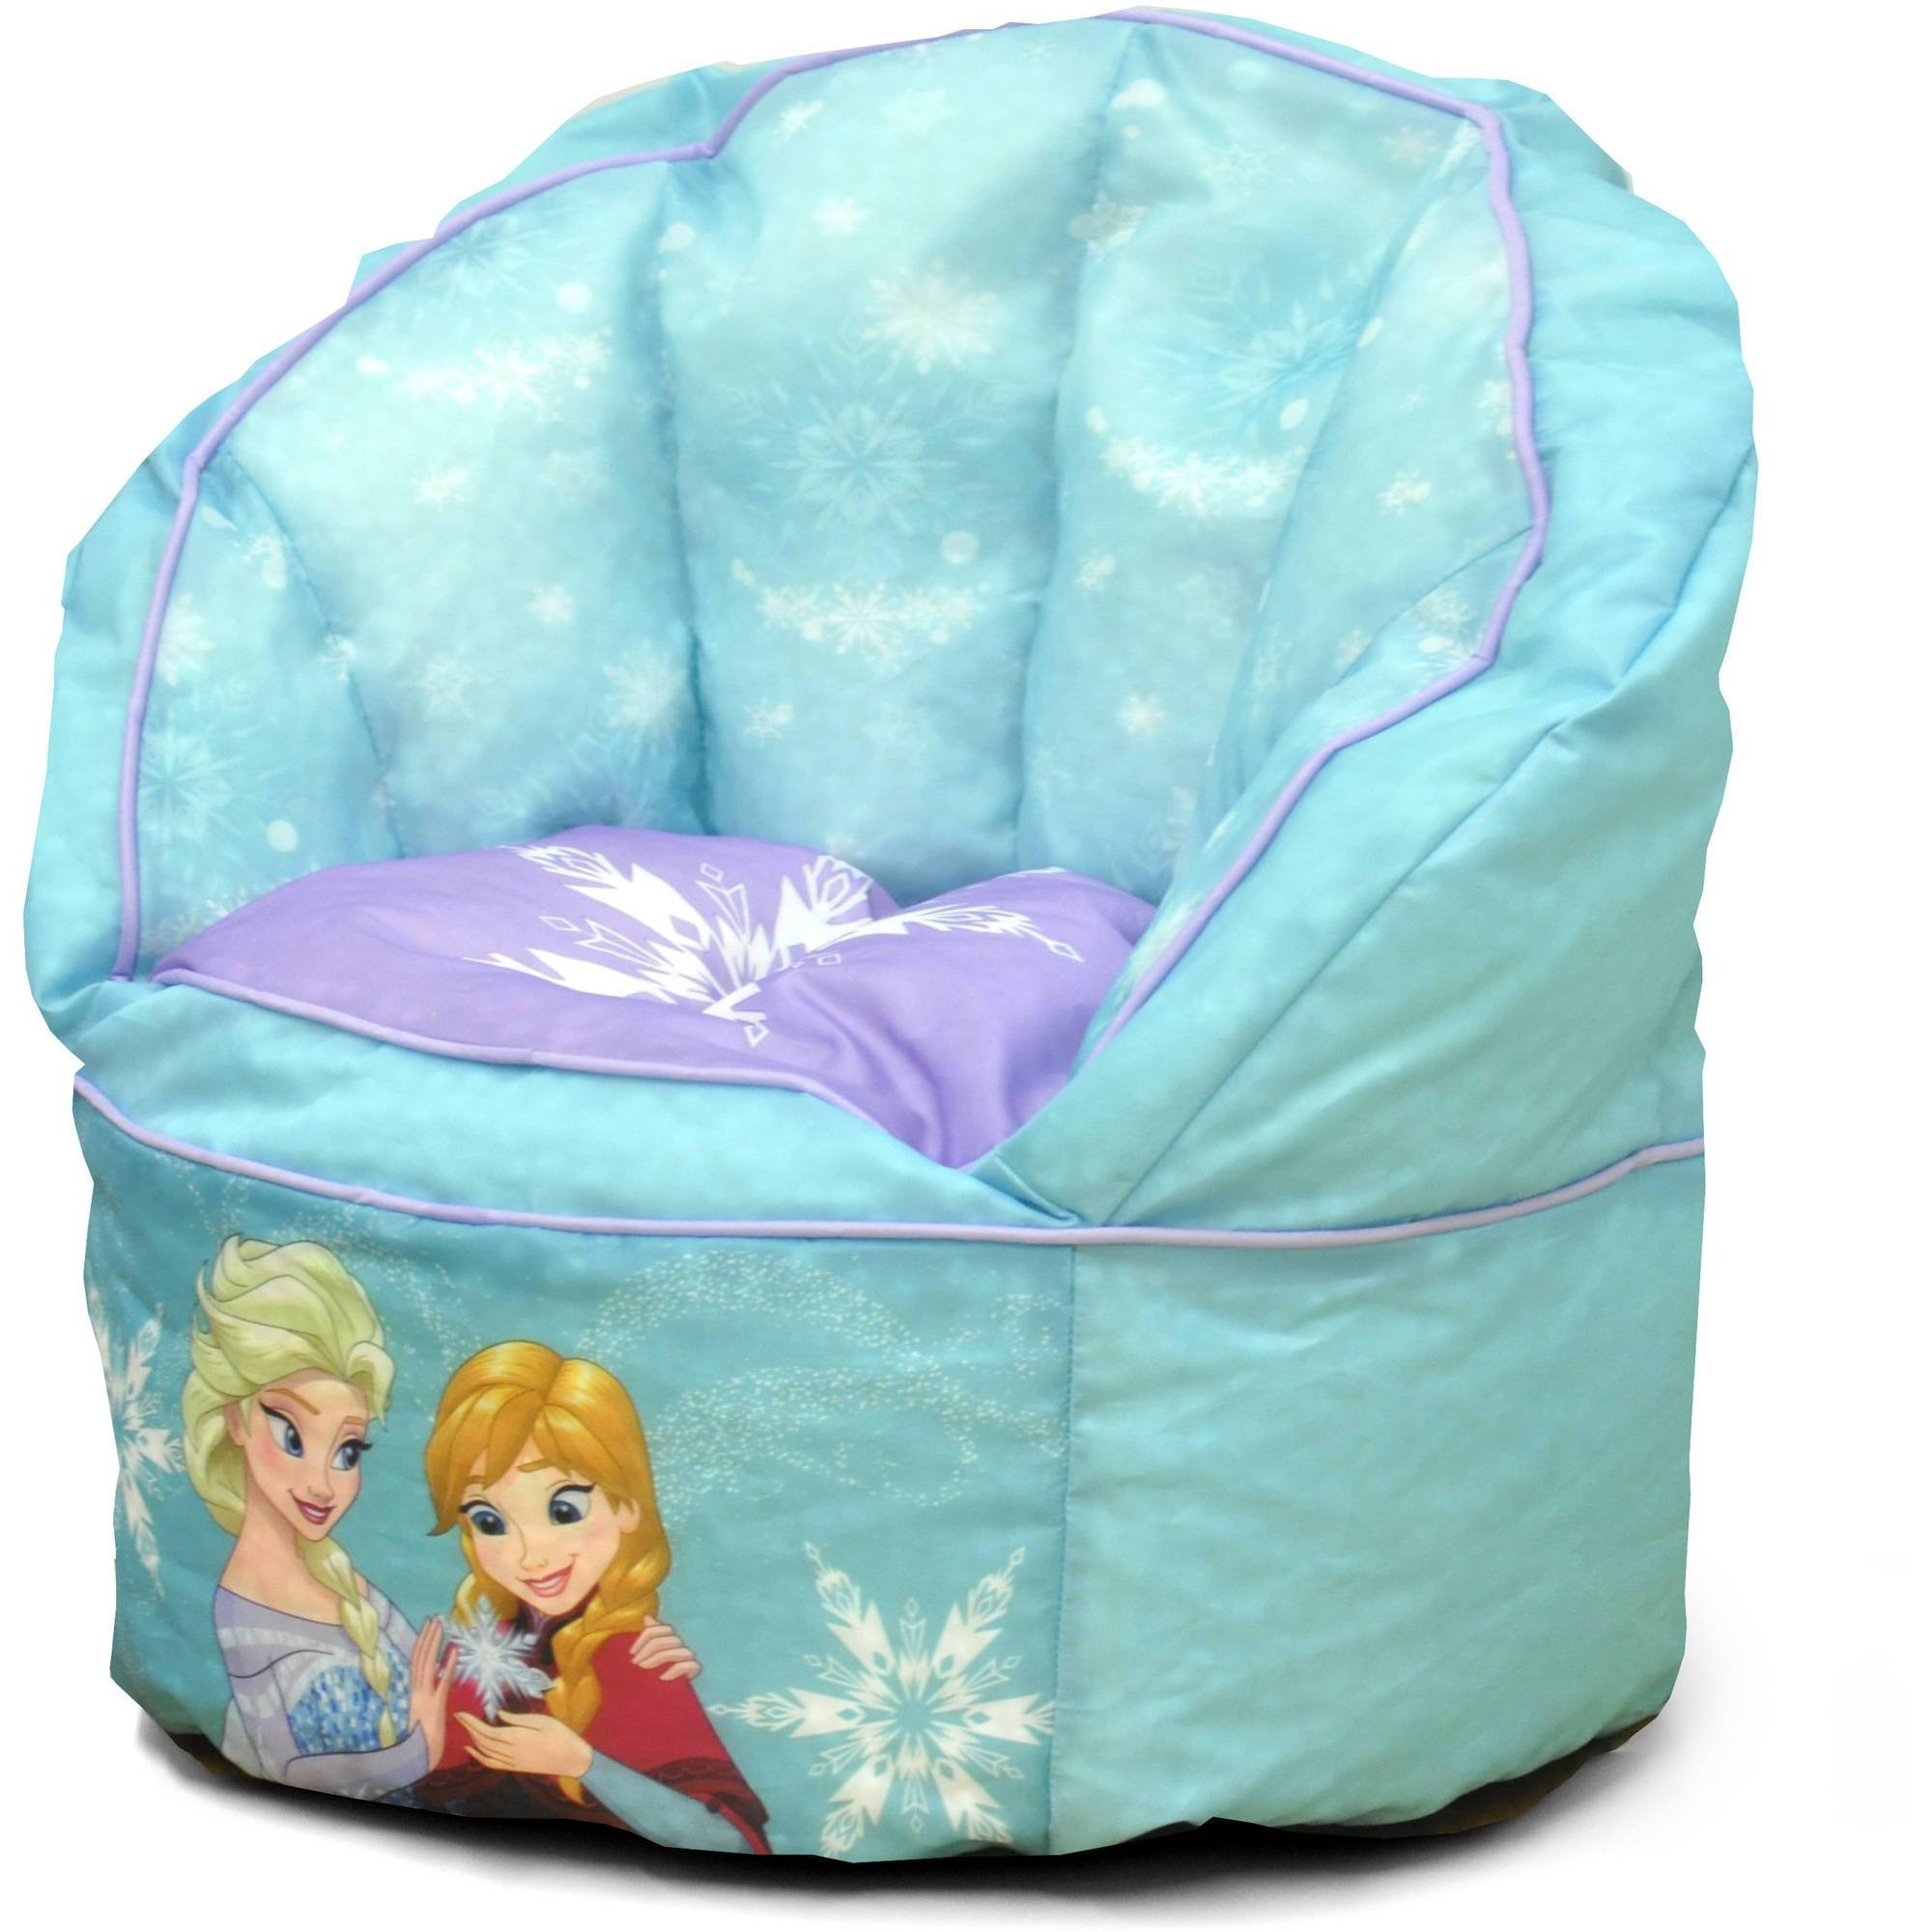 Disney Frozen Sofa Bean Bag Chair With Piping - Walmart for Disney Sofa Chairs (Image 3 of 15)